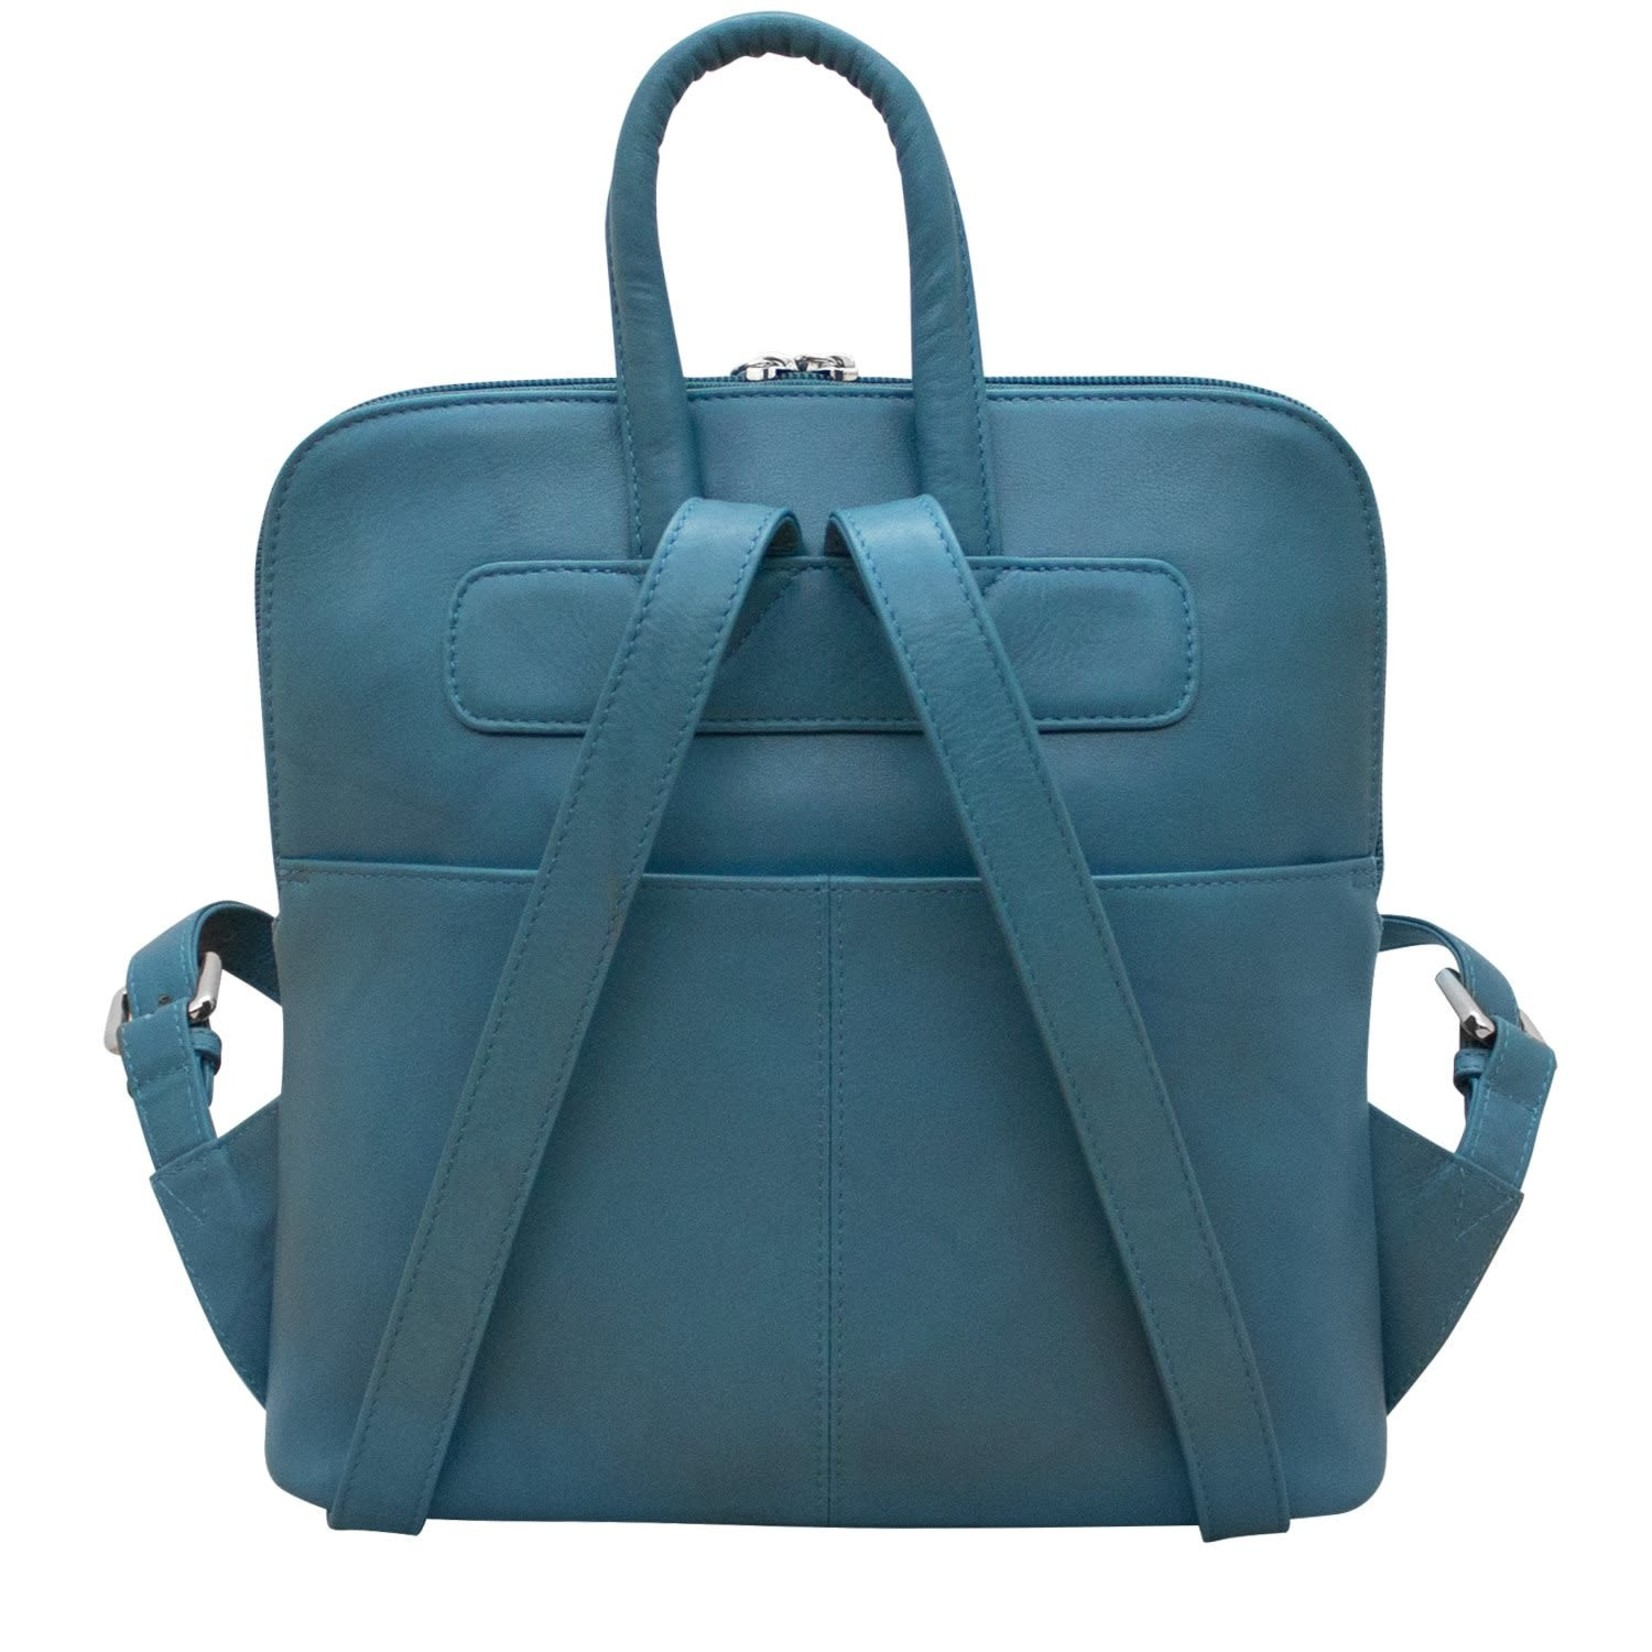 Leather Handbags and Accessories 6503 Jeans Blue - Small Backpack